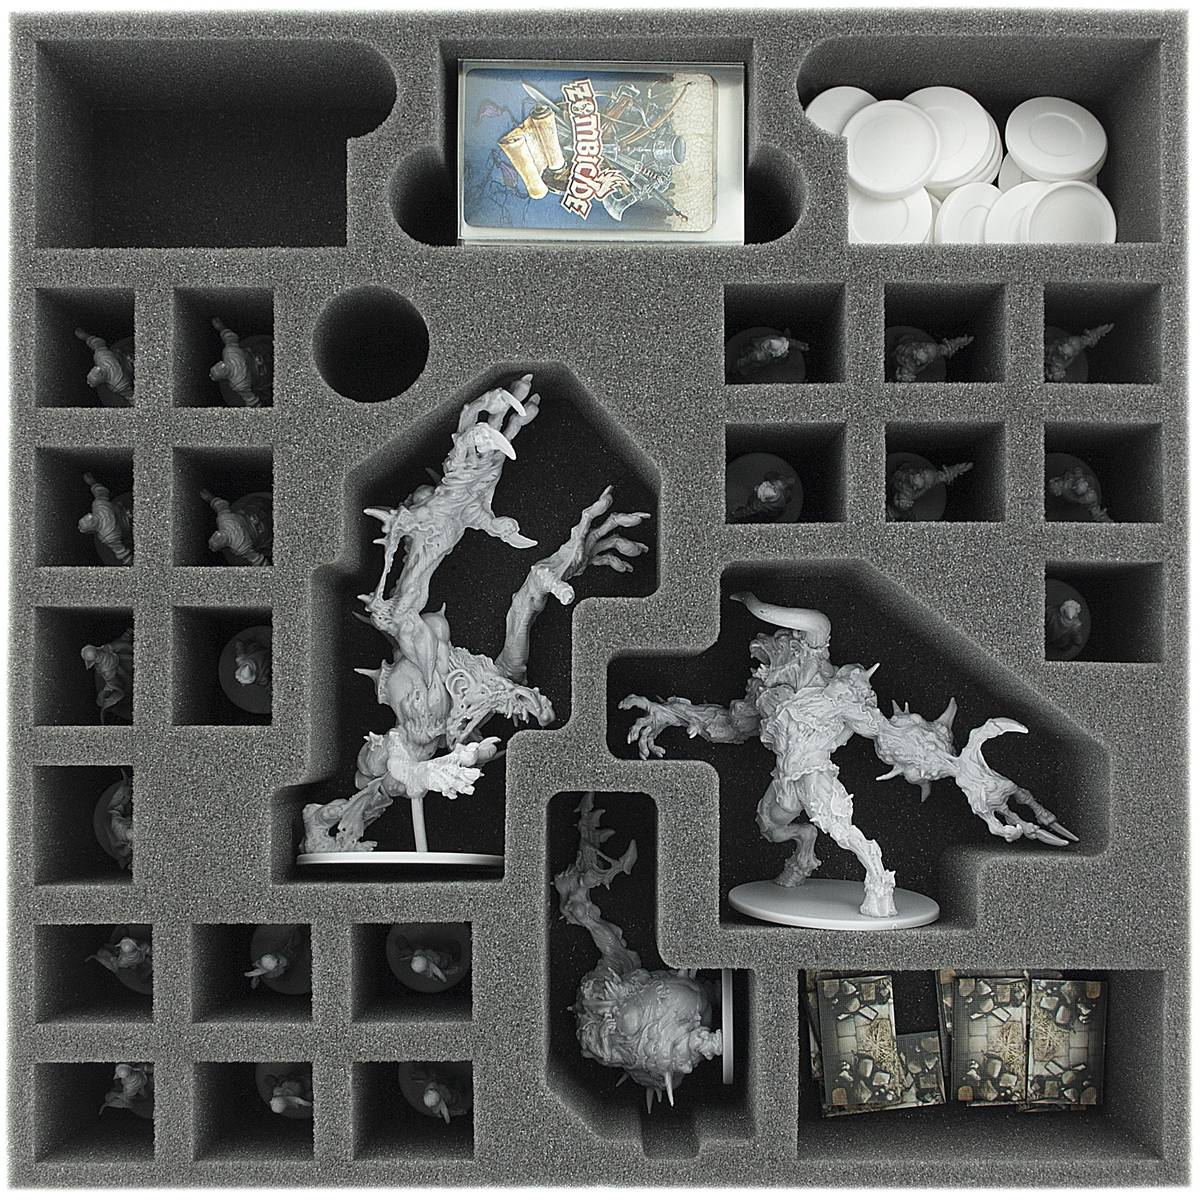 AG065ZC19 65 mm (2.56 inches) foam tray for Zombicide Black Plague Monsters and NPC's